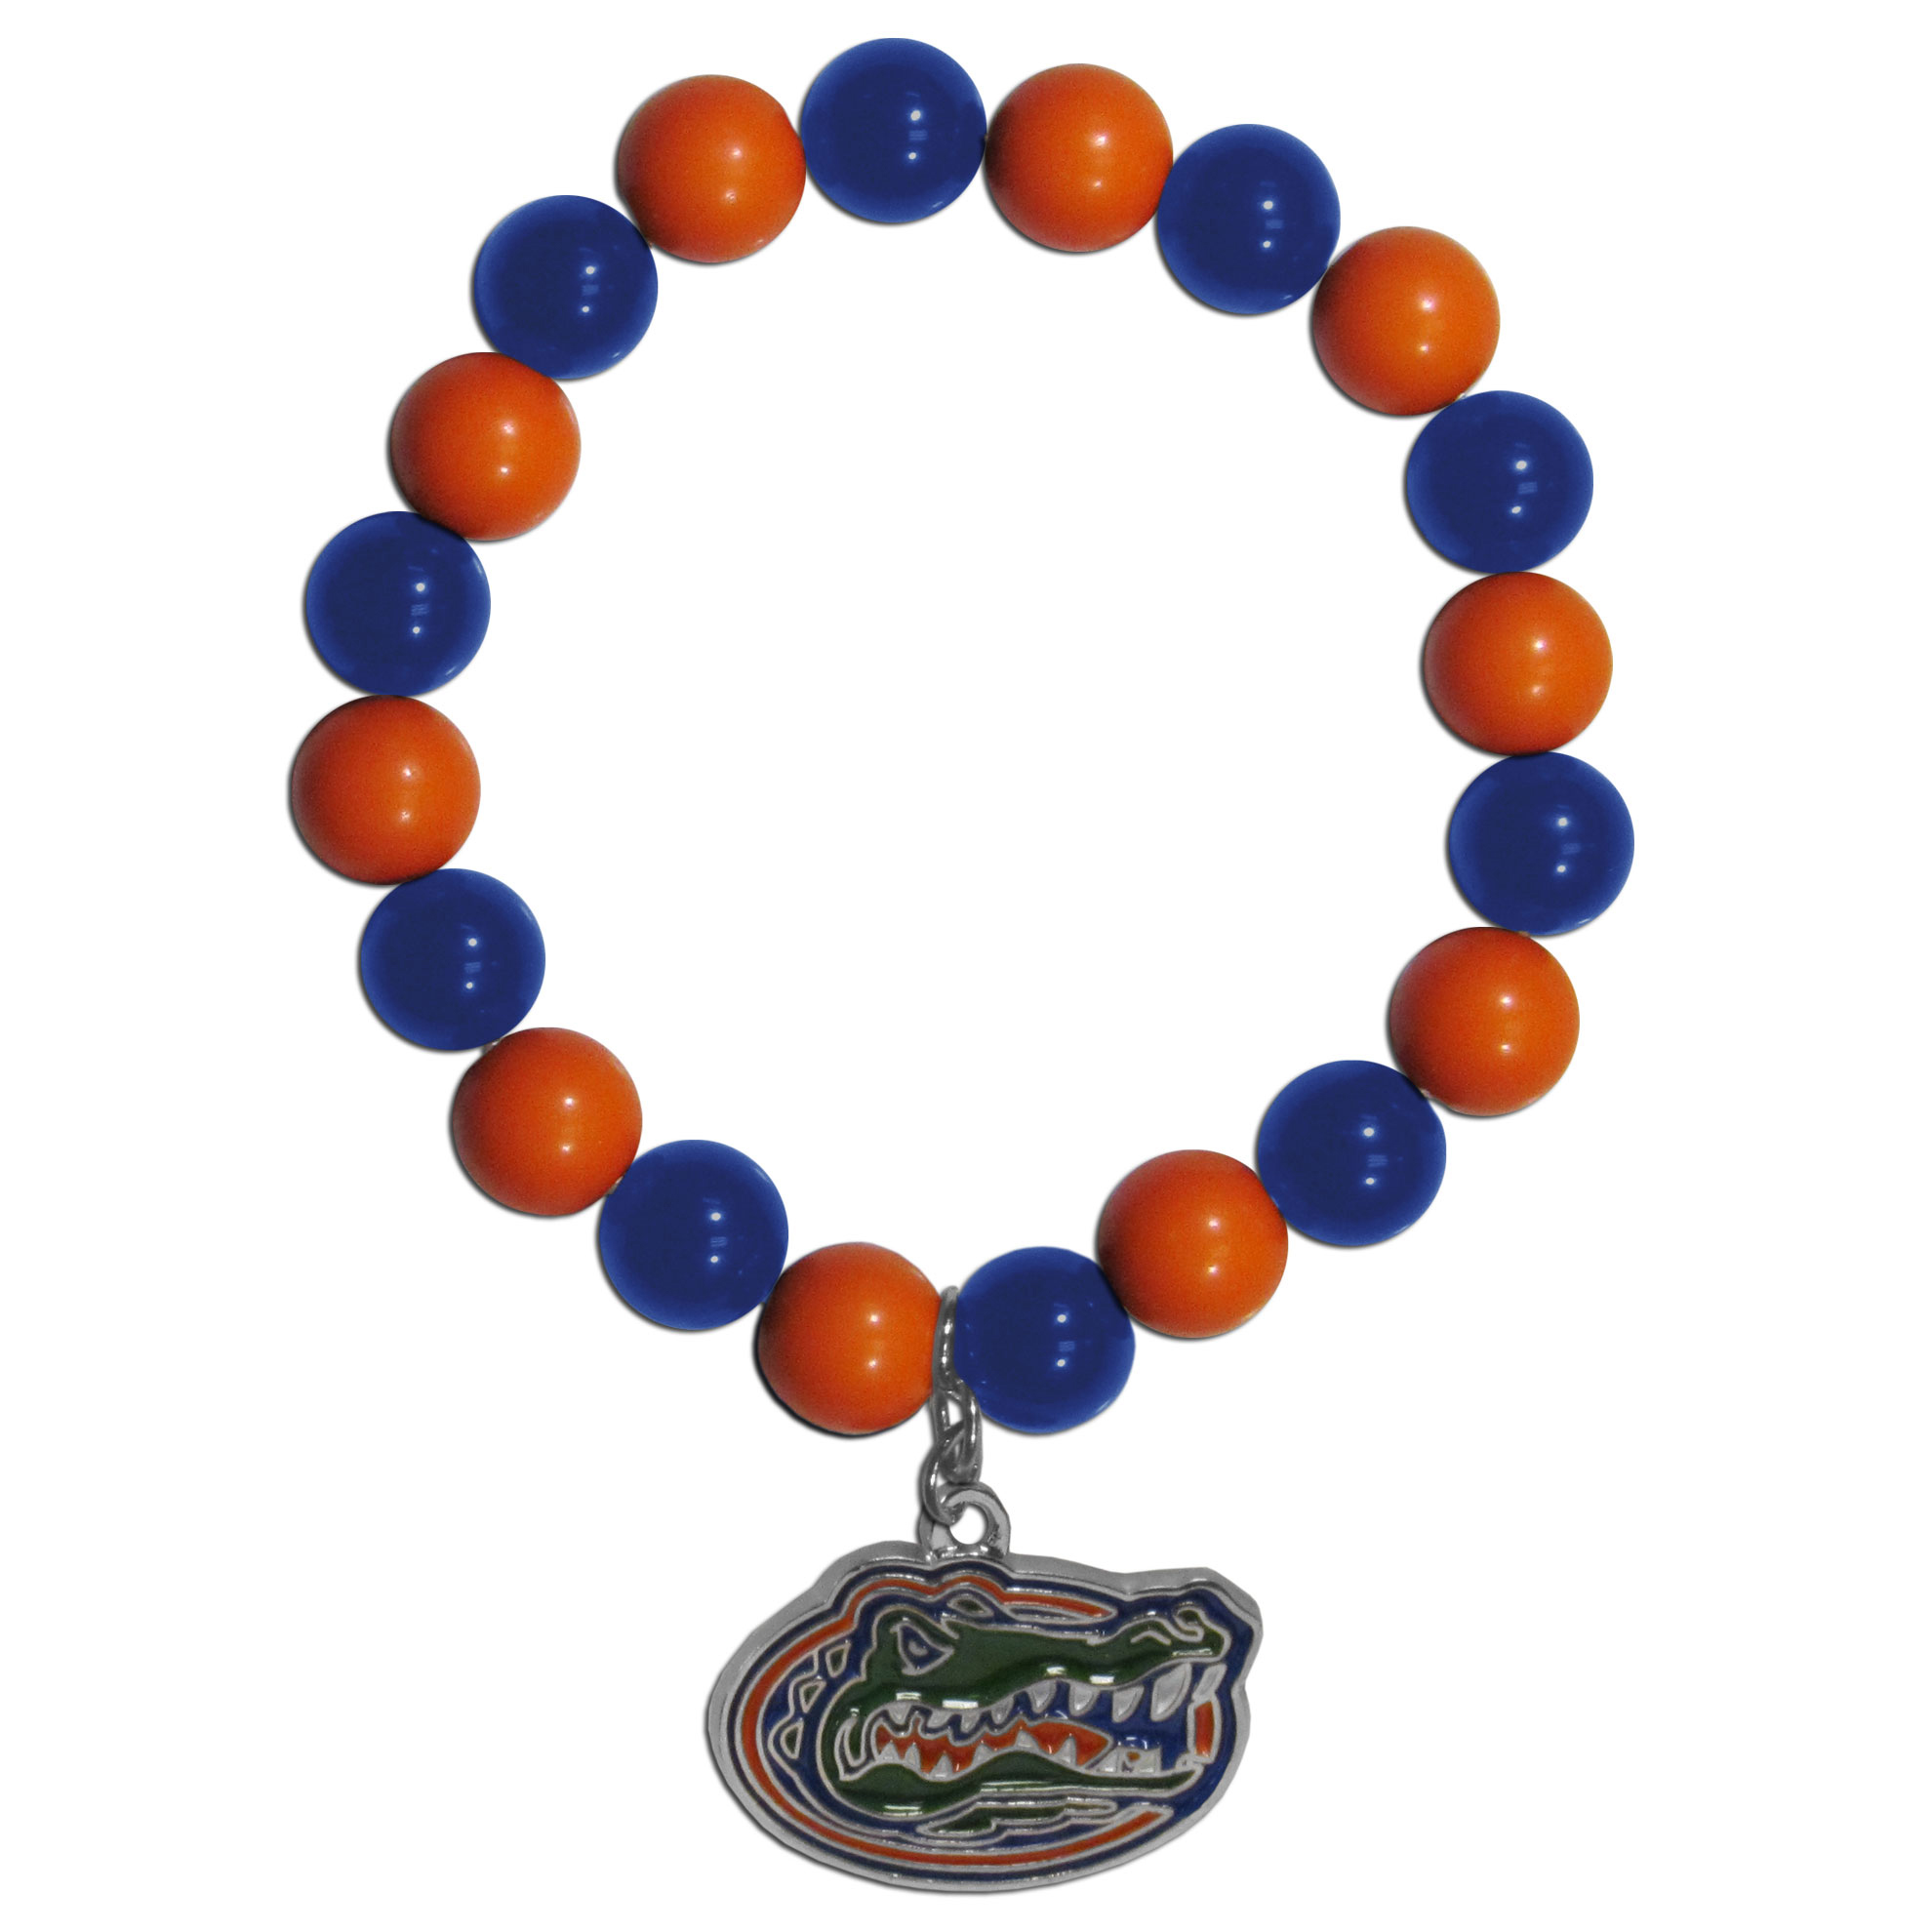 Florida Gators Fan Bead Bracelet - Flash your Florida Gators spirit with this bright stretch bracelet. This new bracelet features multicolored team beads on stretch cord with a nickel-free enameled chrome team charm. This bracelet adds the perfect pop of color to your game day accessories.